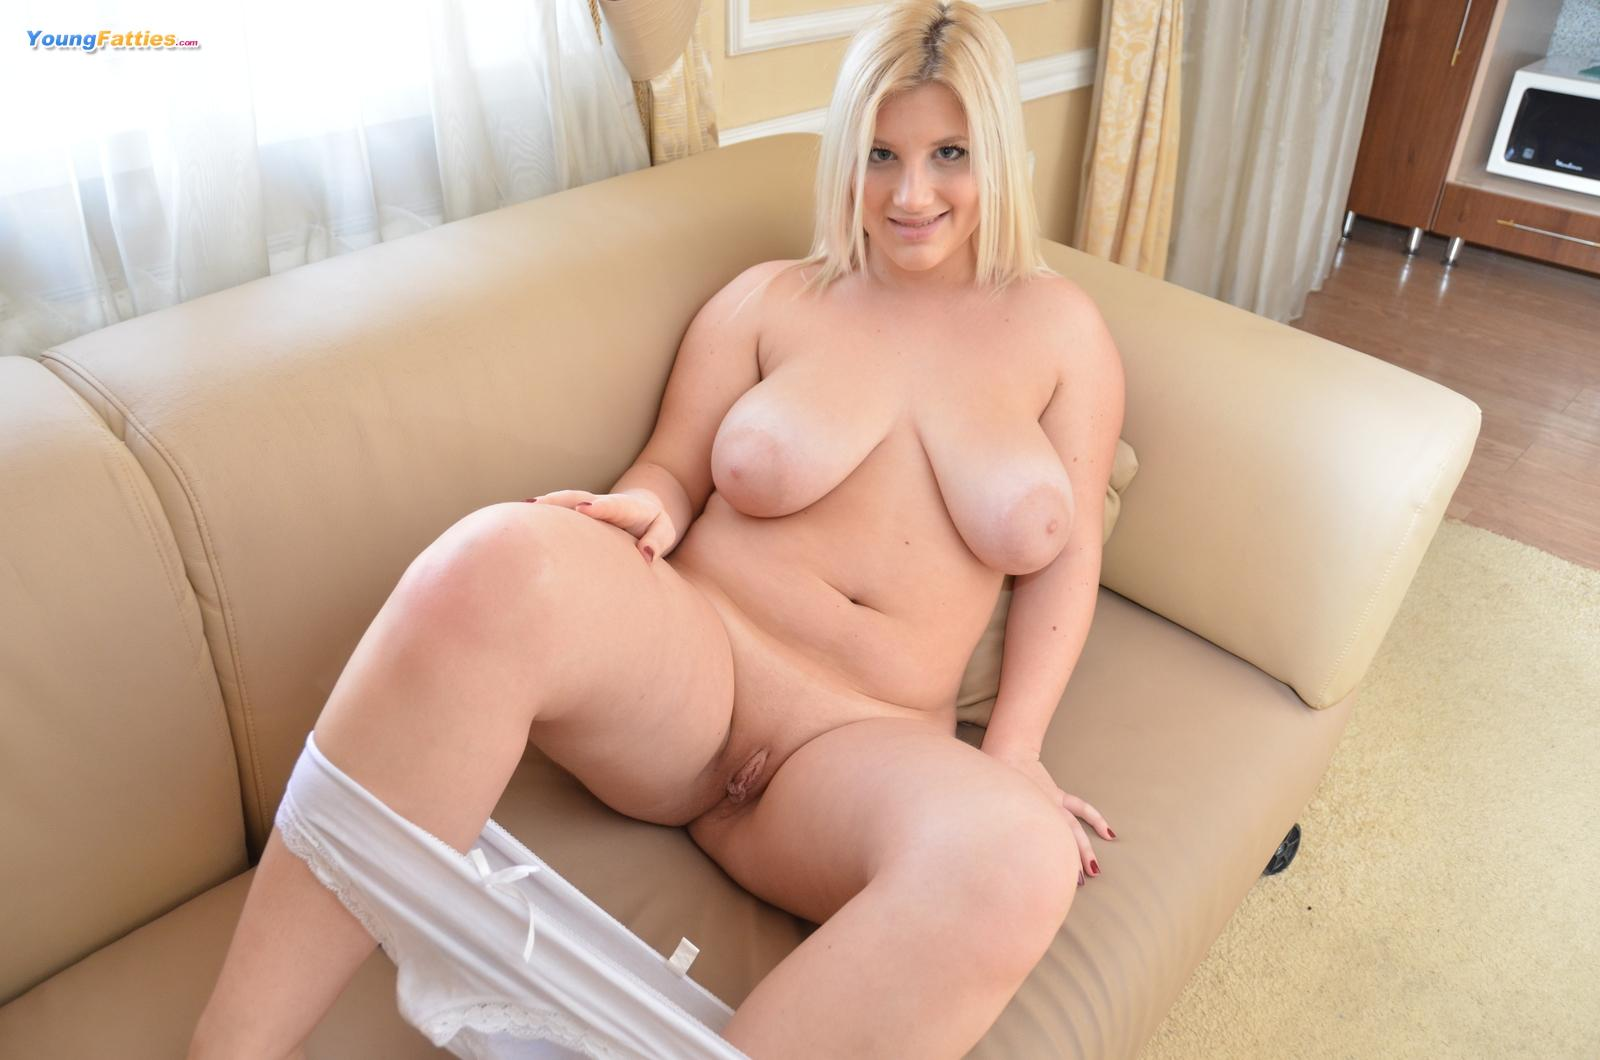 from Tomas fatty lady porn with young